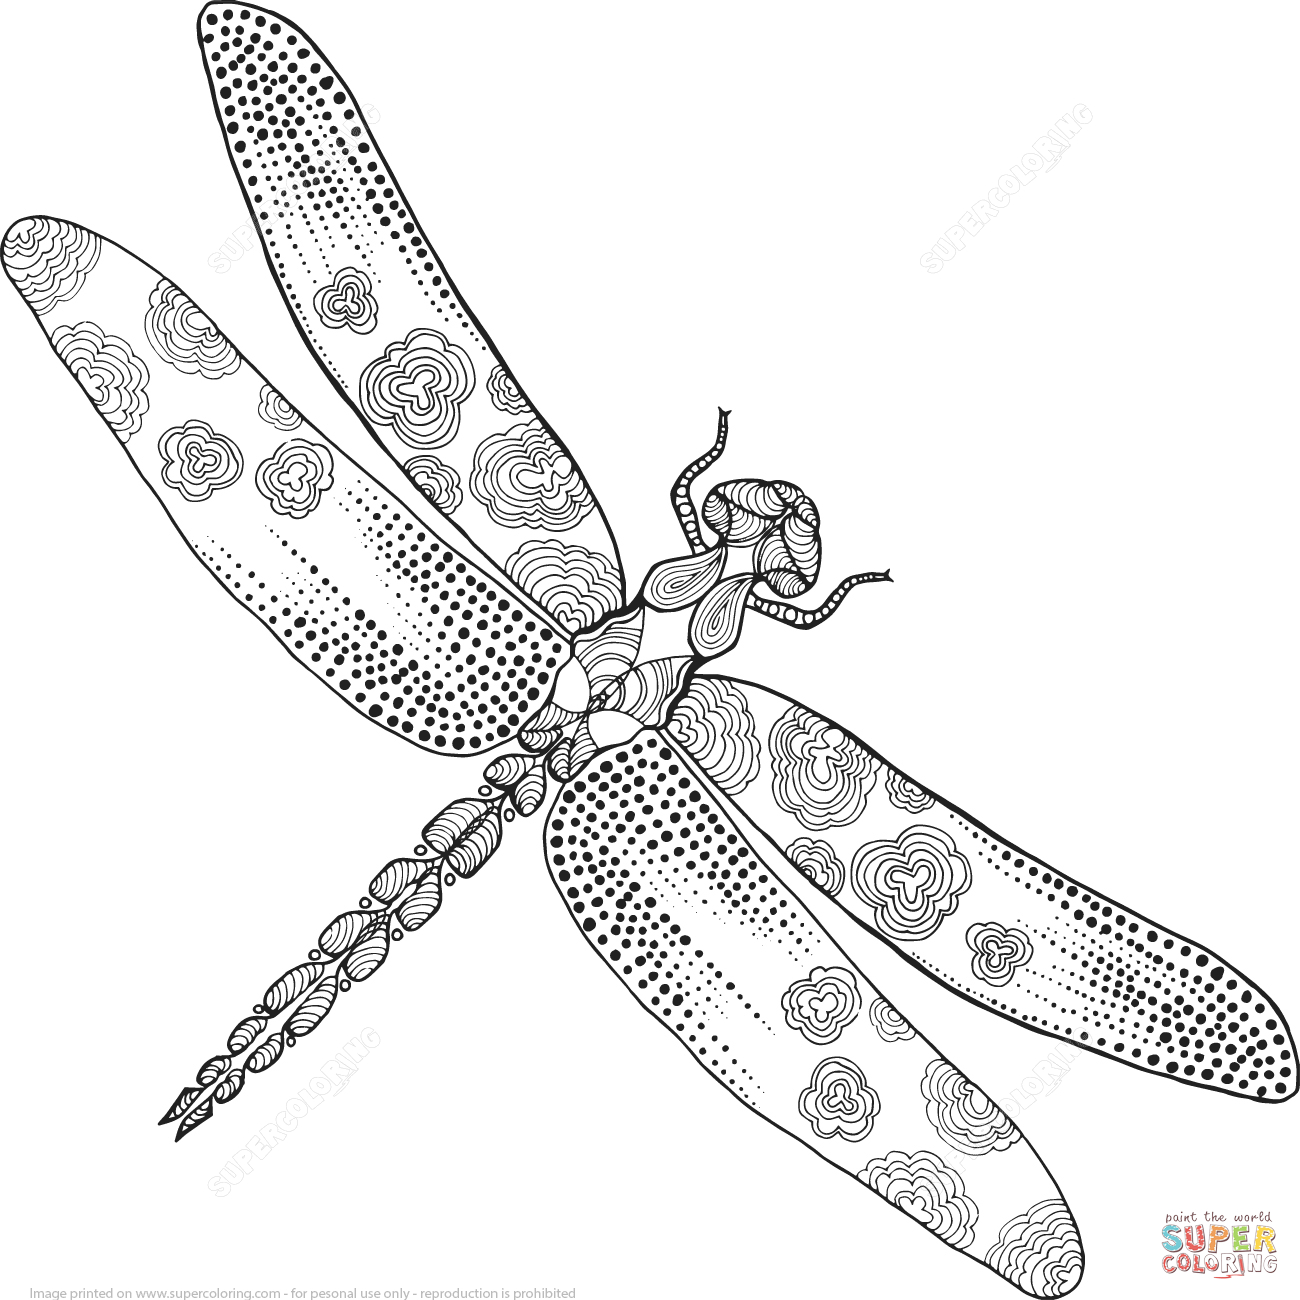 Zentangle Dragonfly Coloring Page   Free Printable Coloring Pages - Free Printable Pictures Of Dragonflies